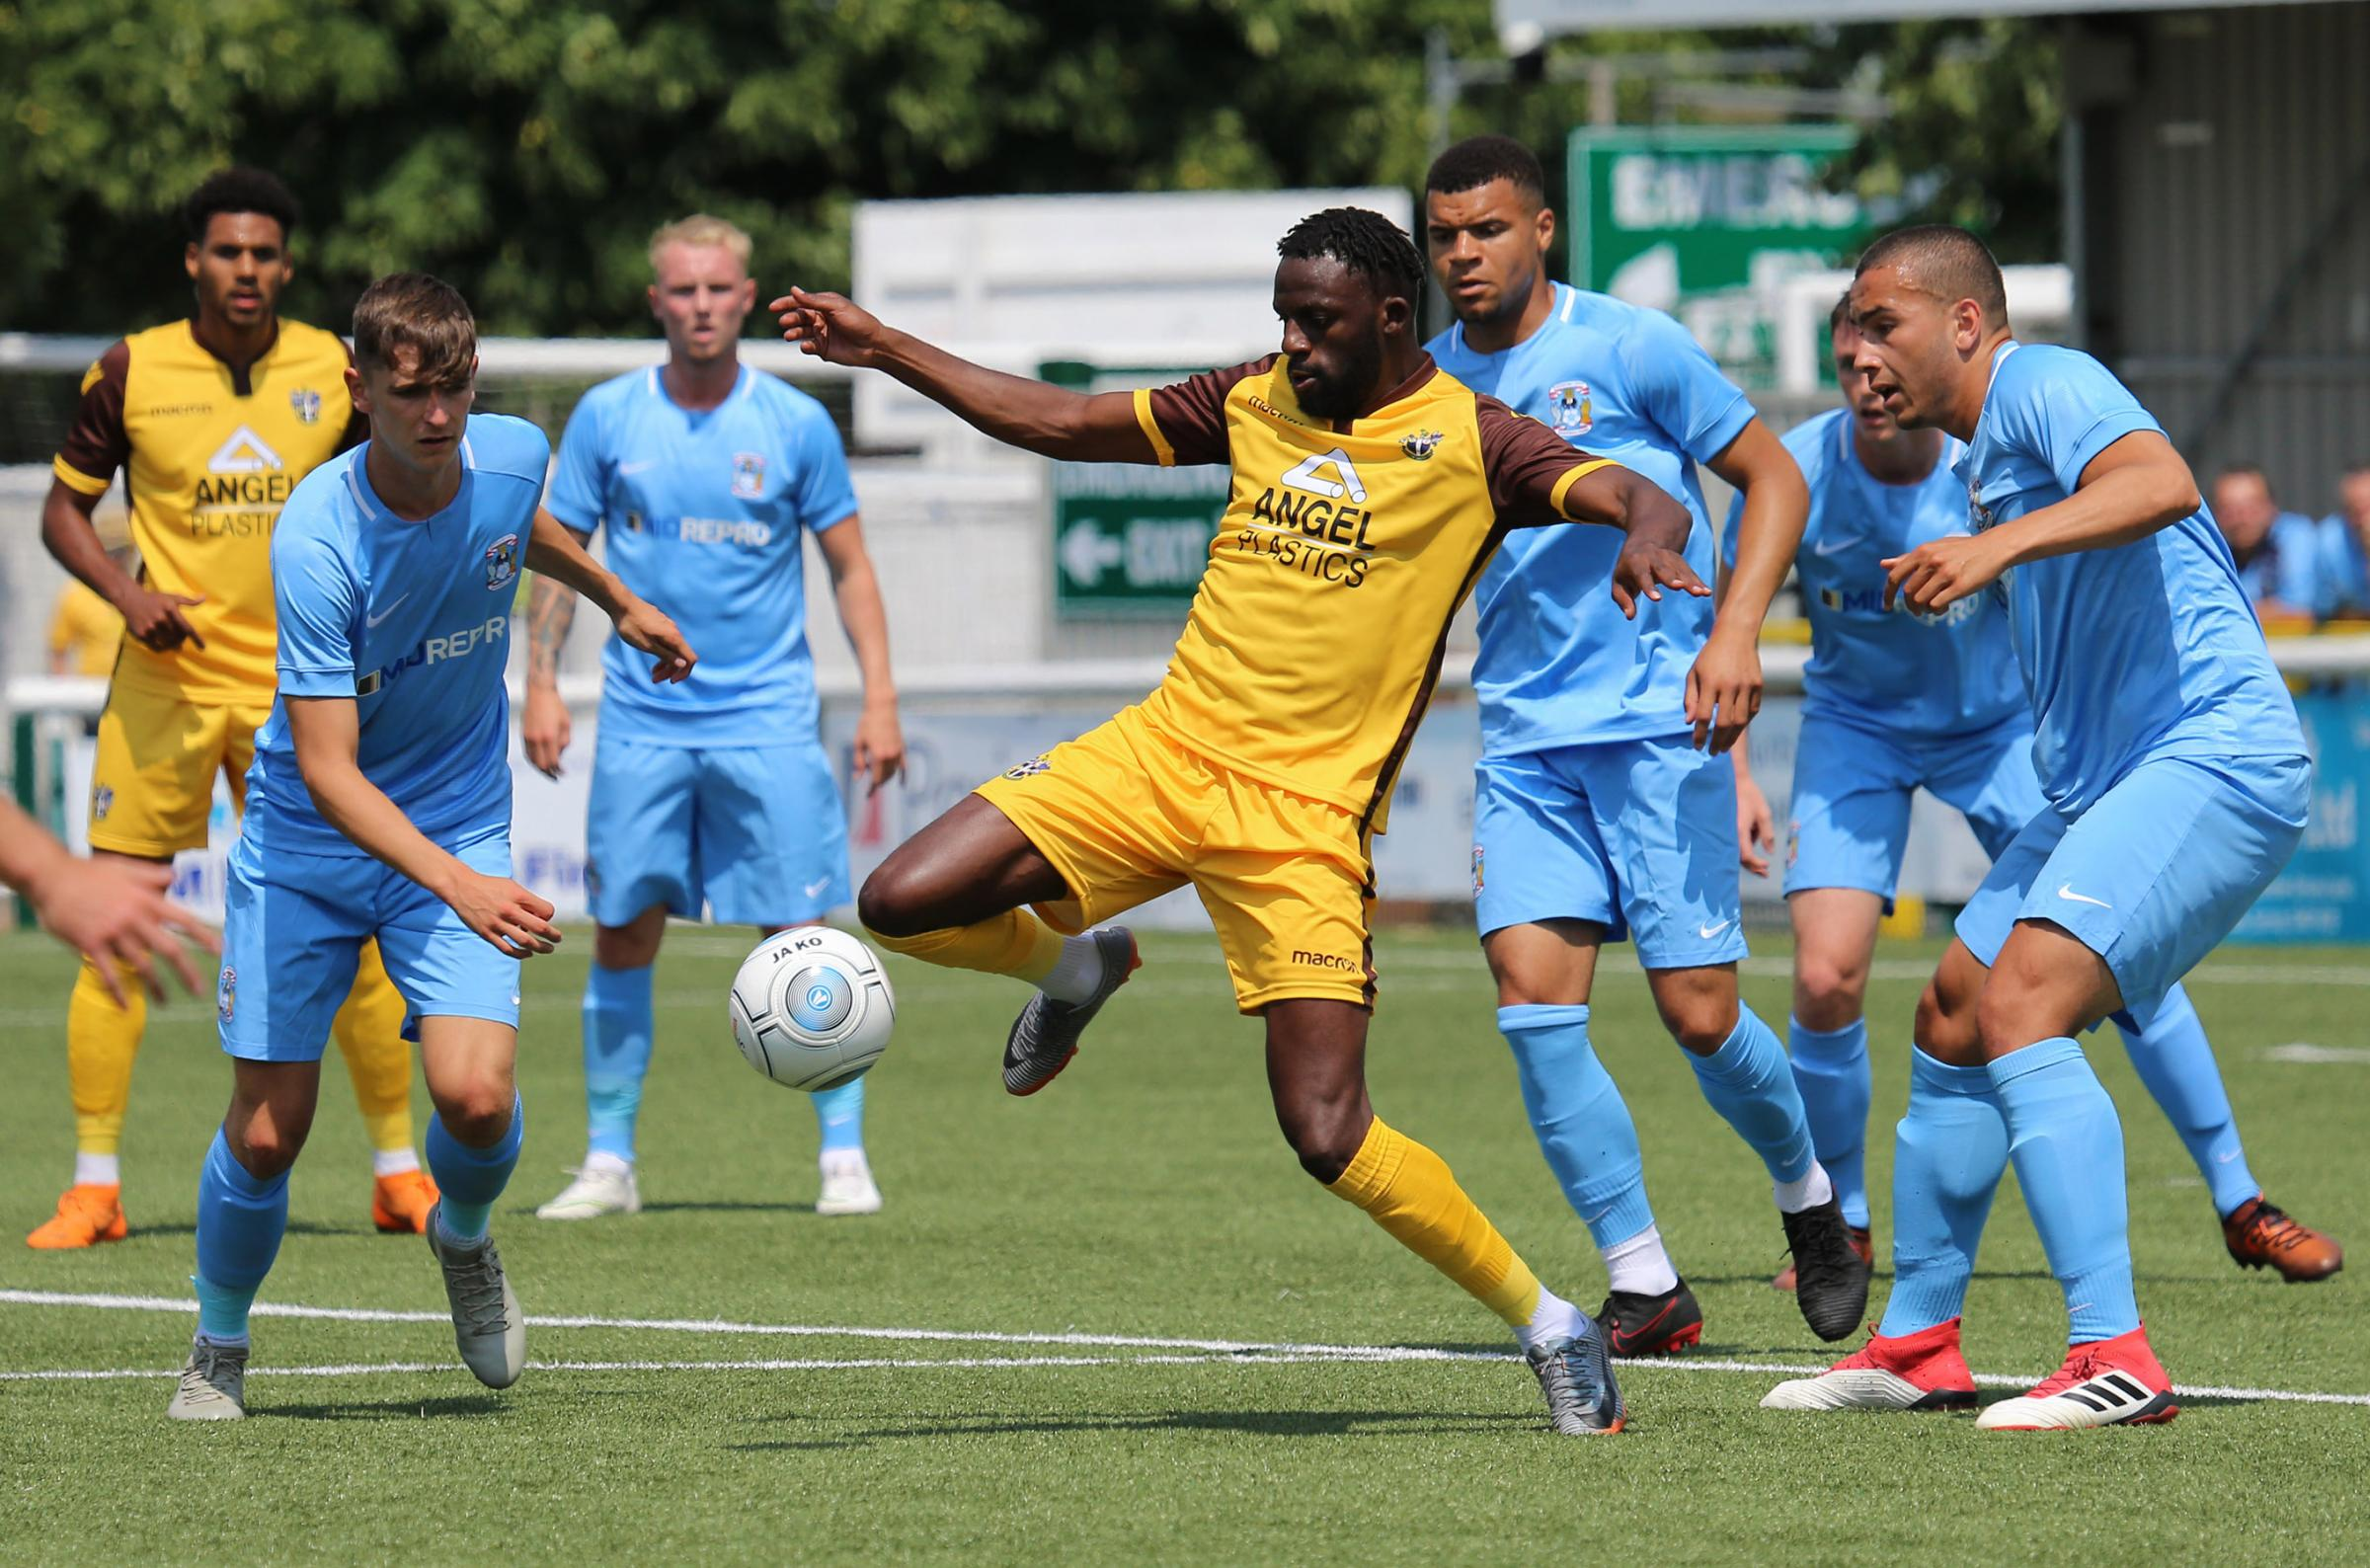 Sutton's Tom Bolarinwa, watched by new signing Jonah Ayunga (far left), shields the ball from a host of Coventry players including former United favourite Max Biamou. Picture: Paul Loughlin